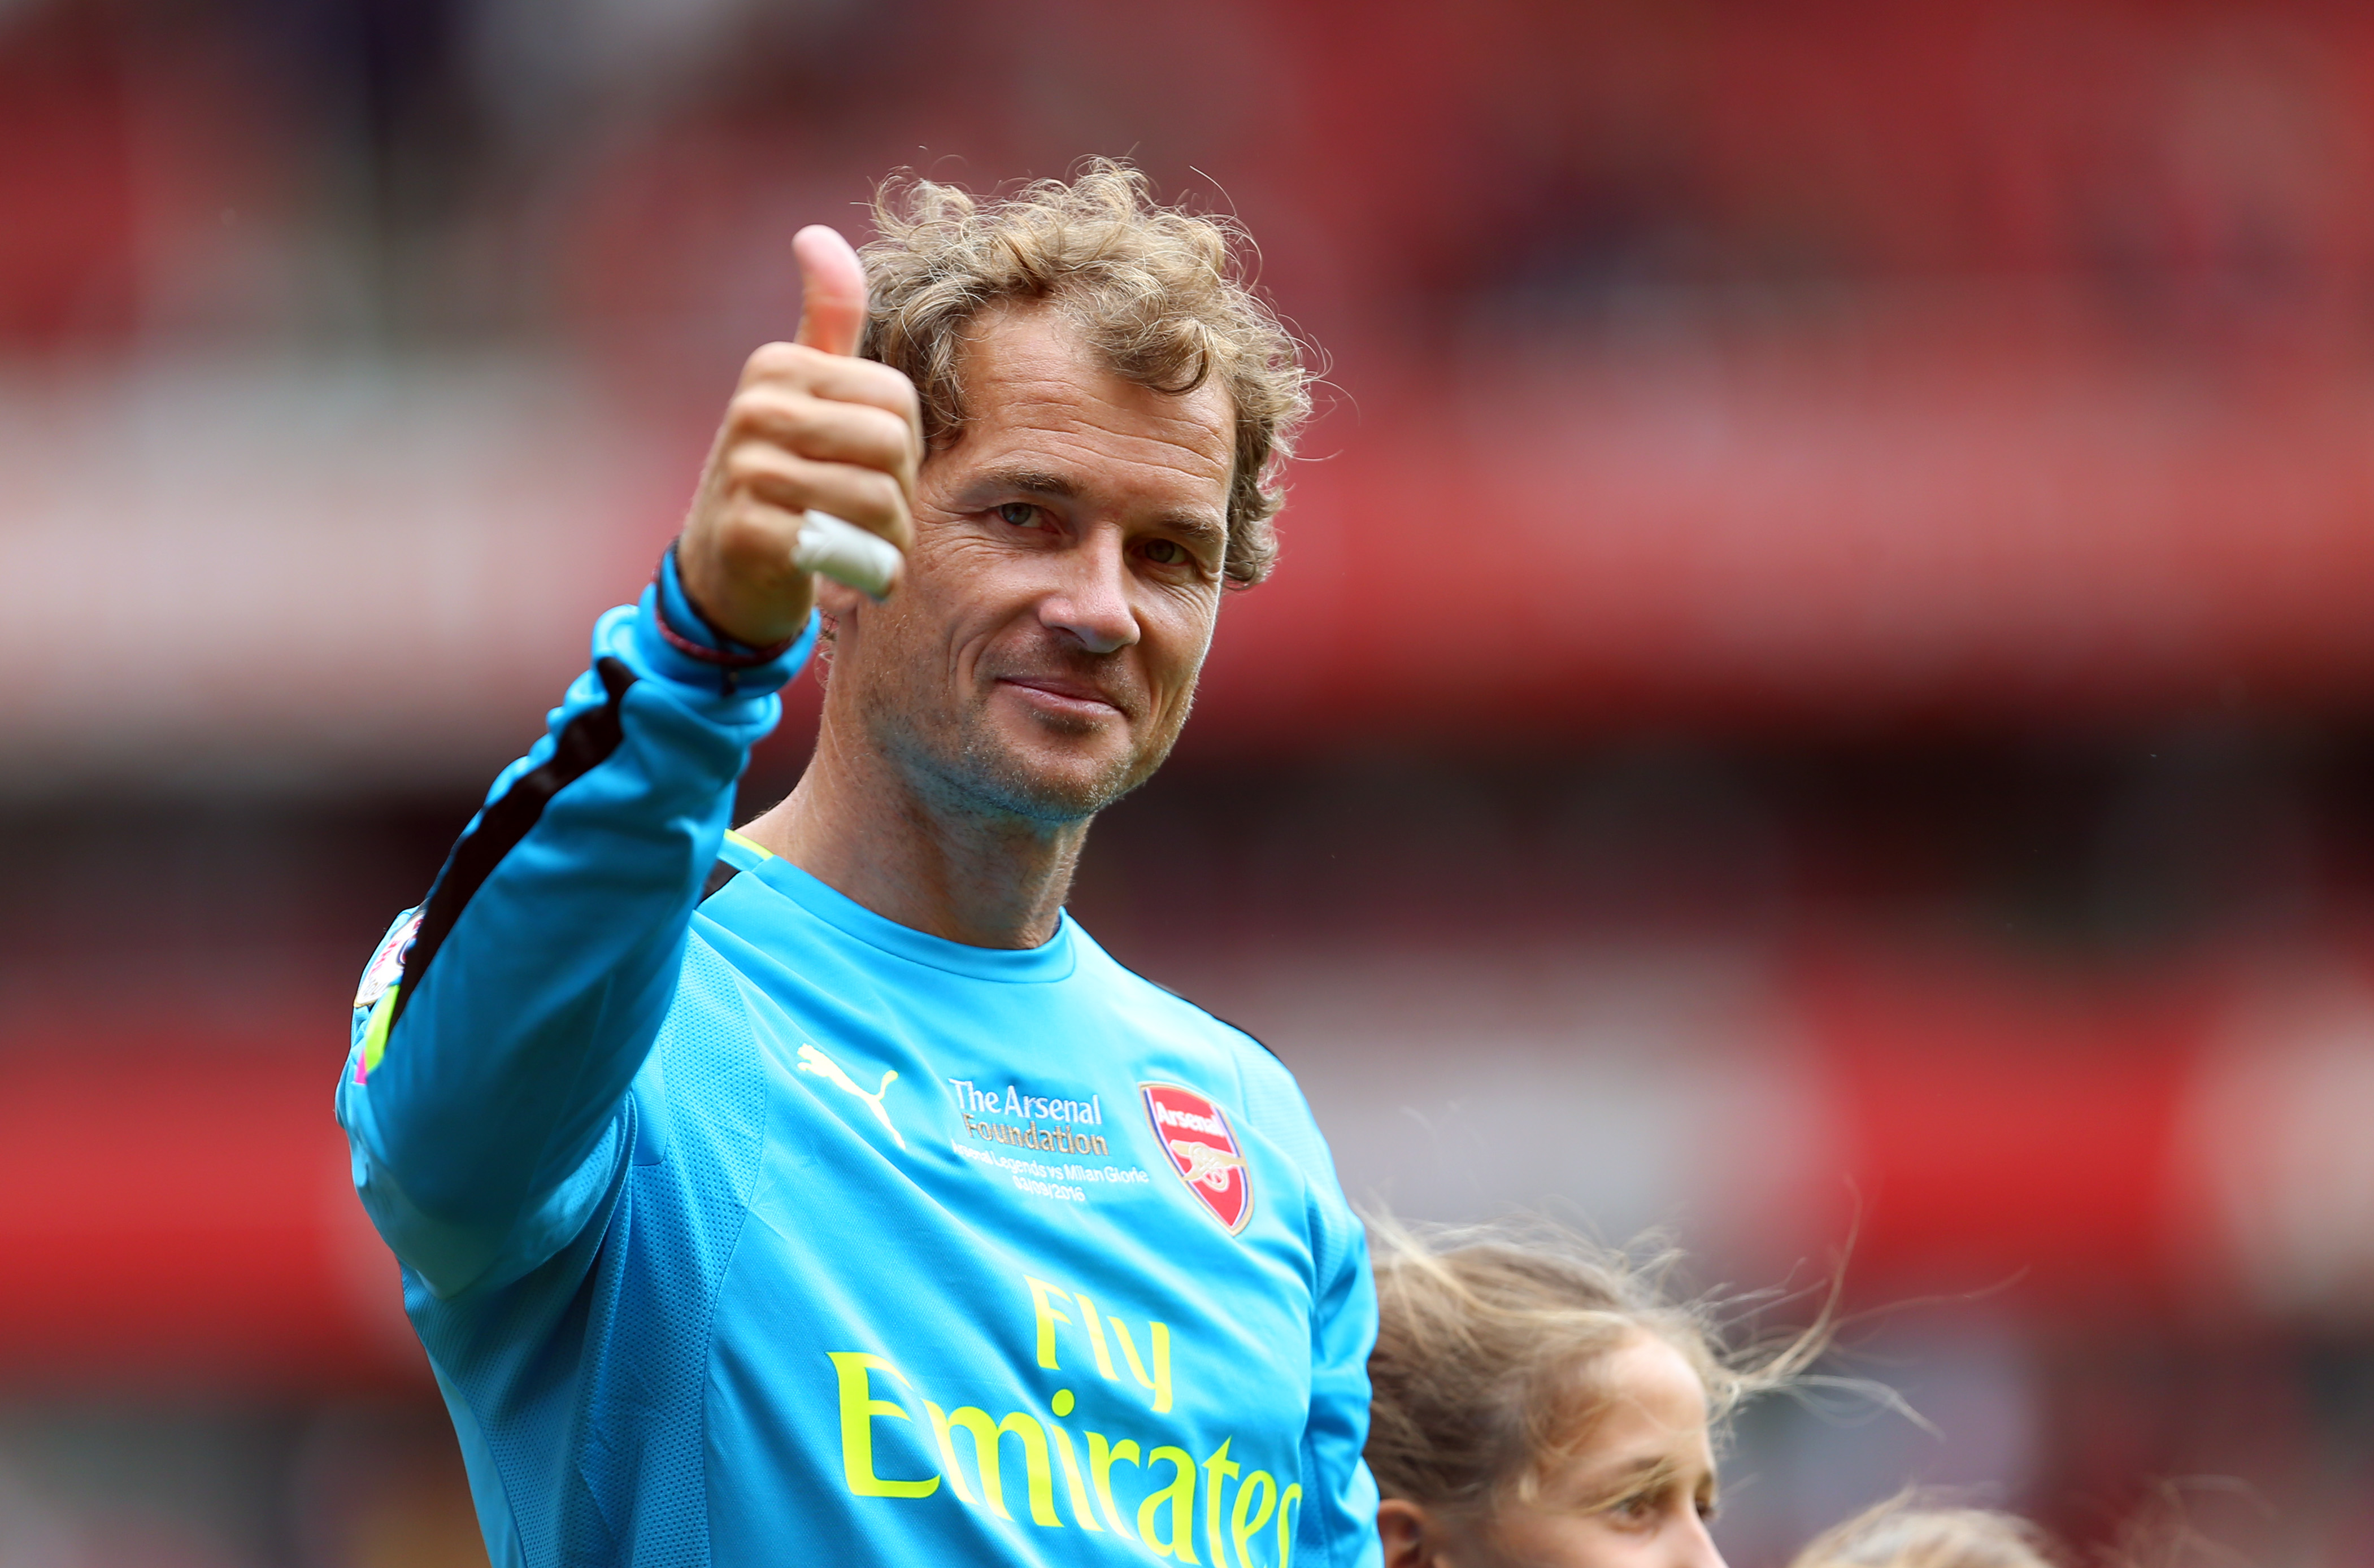 Arsenal can win the Premier League AND Champions League this season, says former goalkeeper Jens Lehmann